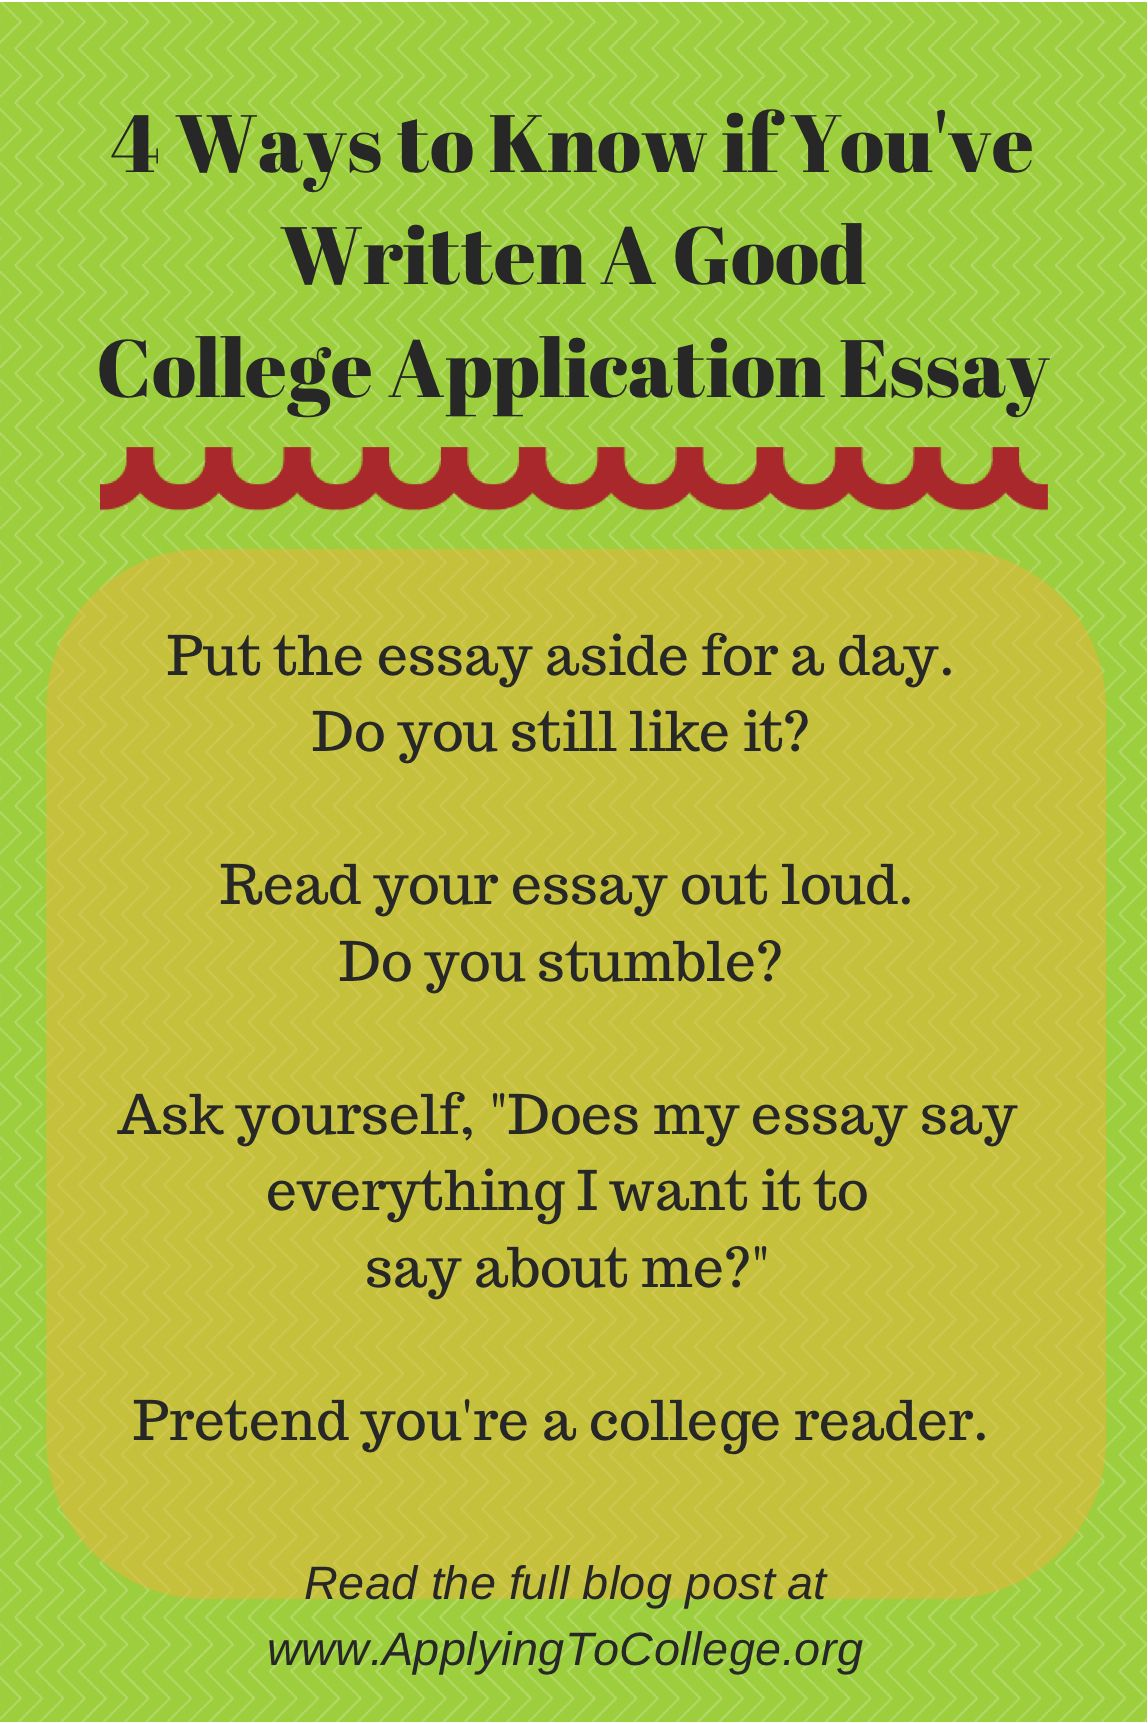 ways to know if youve written a good college application essay   ways to know if youve written a good college application essay